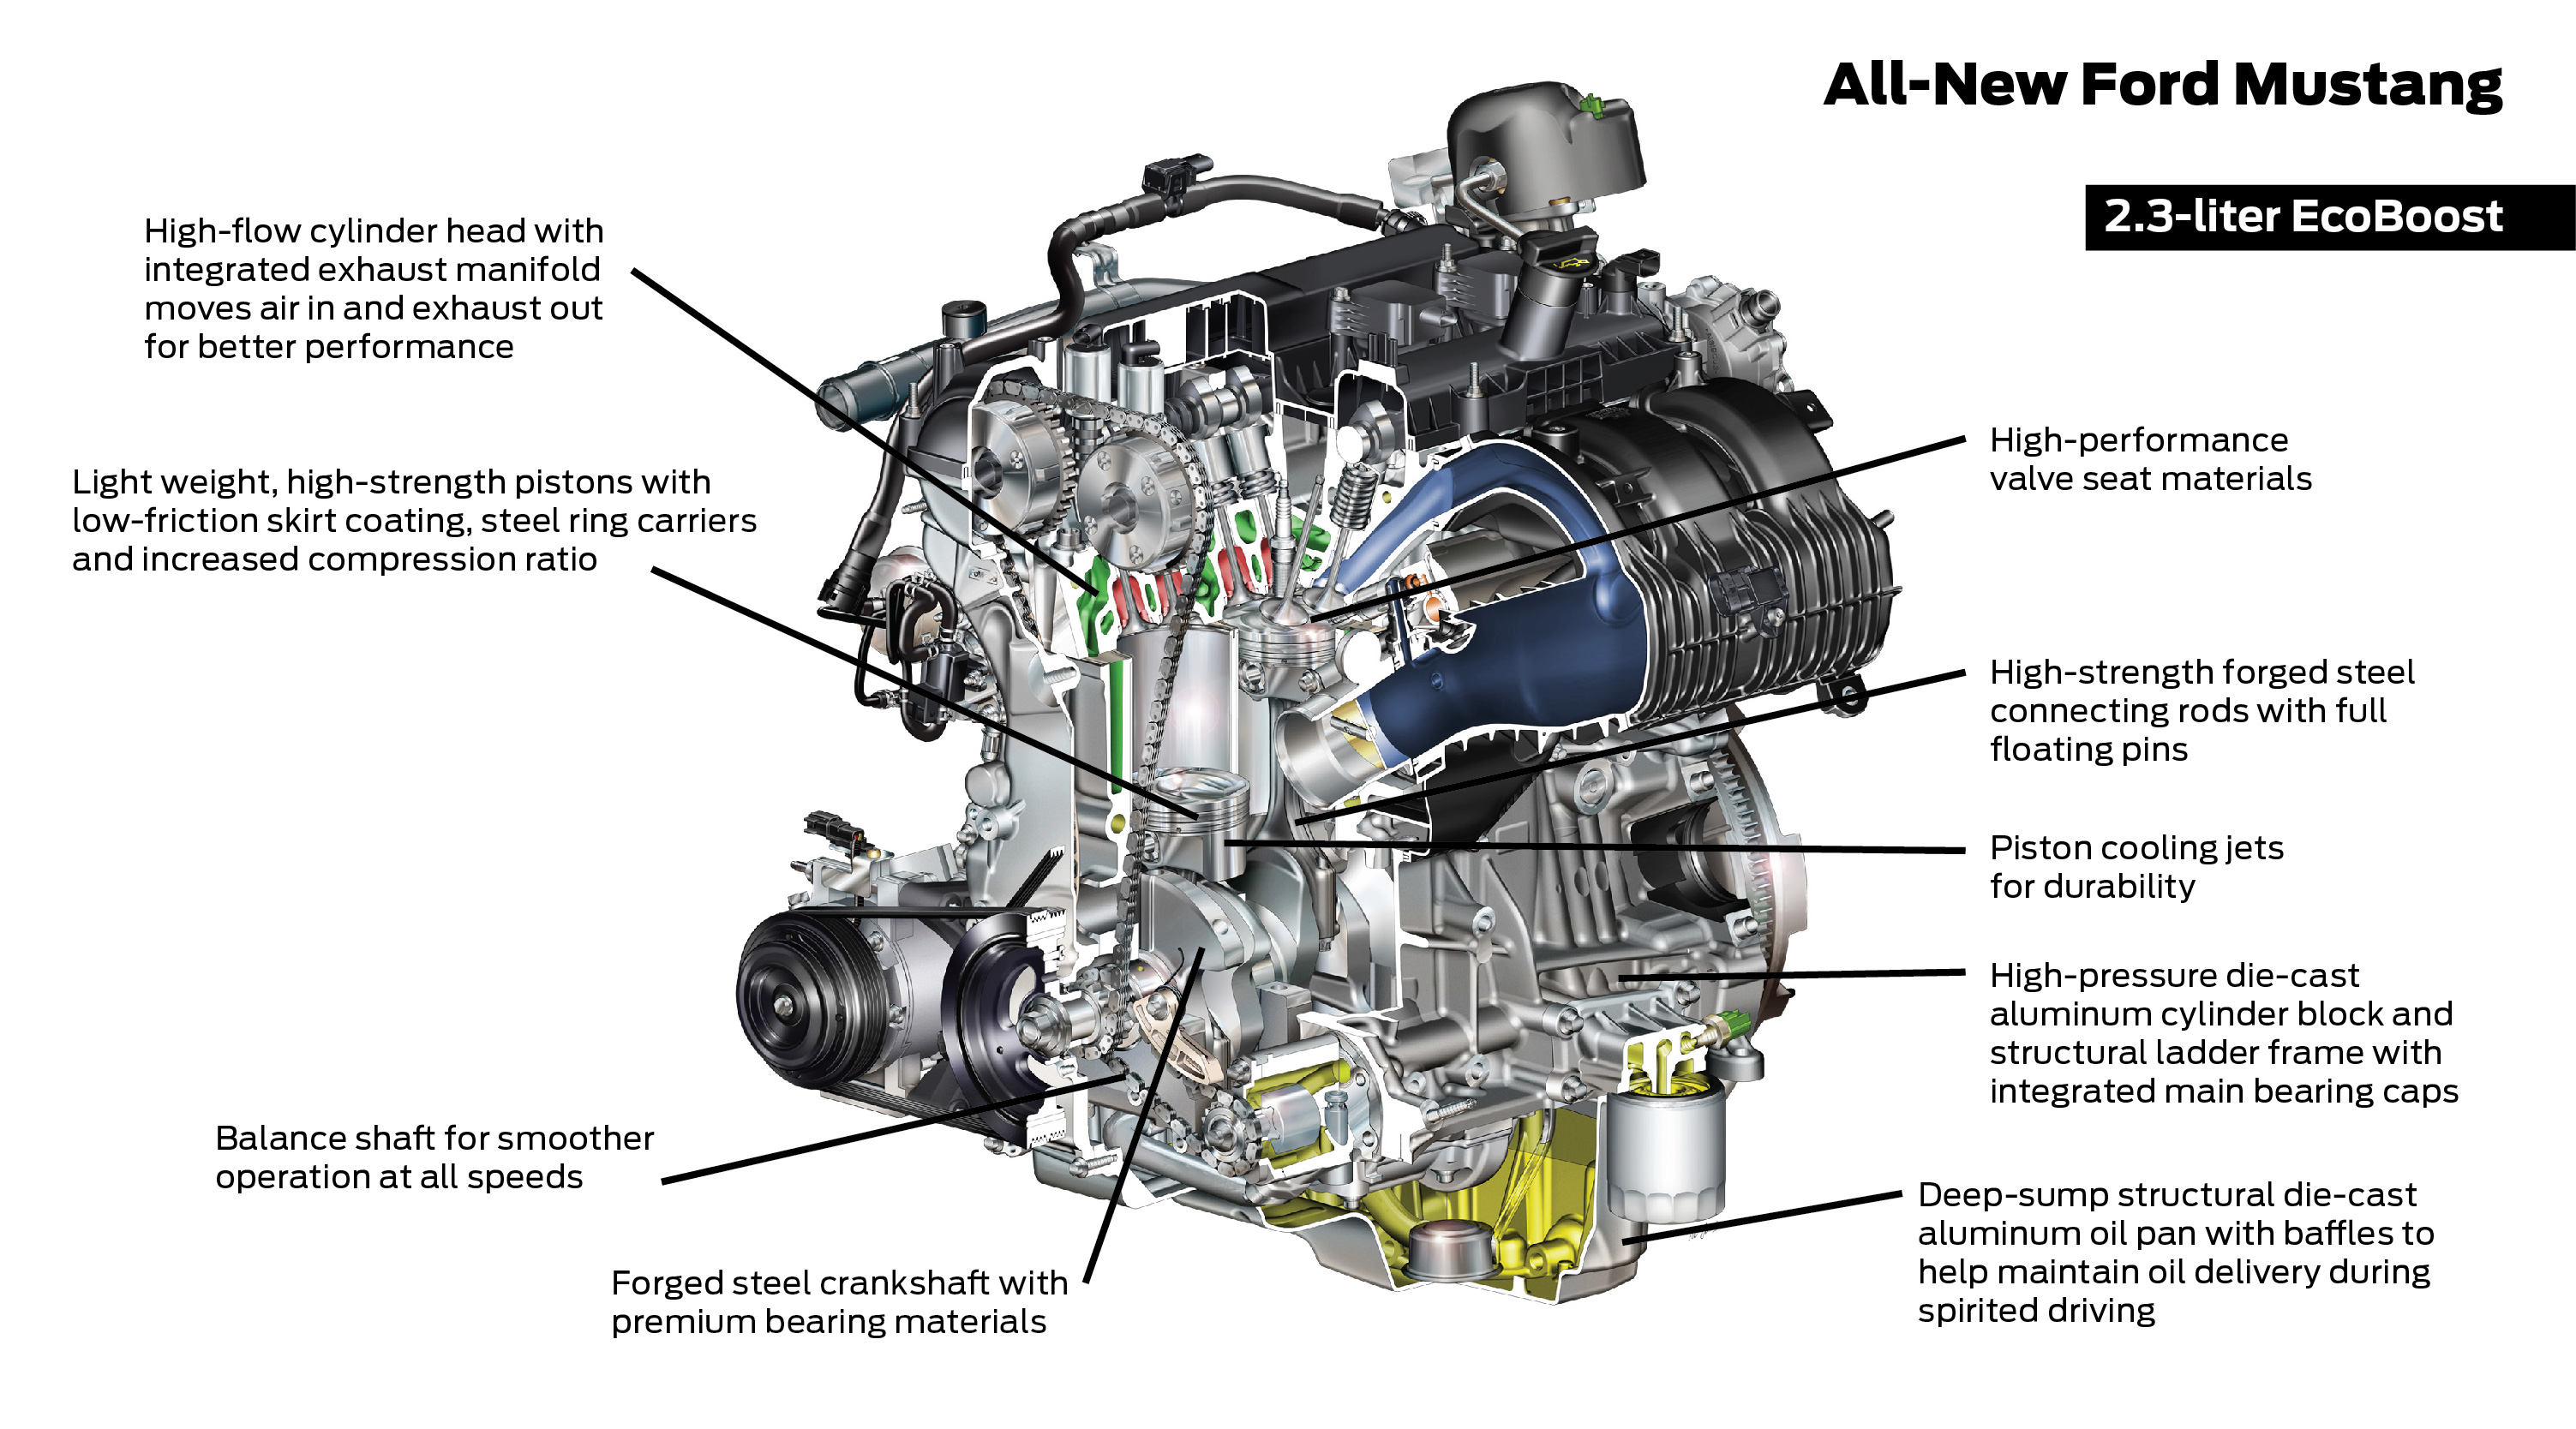 a simple guide to the 2015 ford mustang 2 3 liter ecoboost engine 2013 Boss 302 Hood Ford Mustang V8 Engine Diagram #8